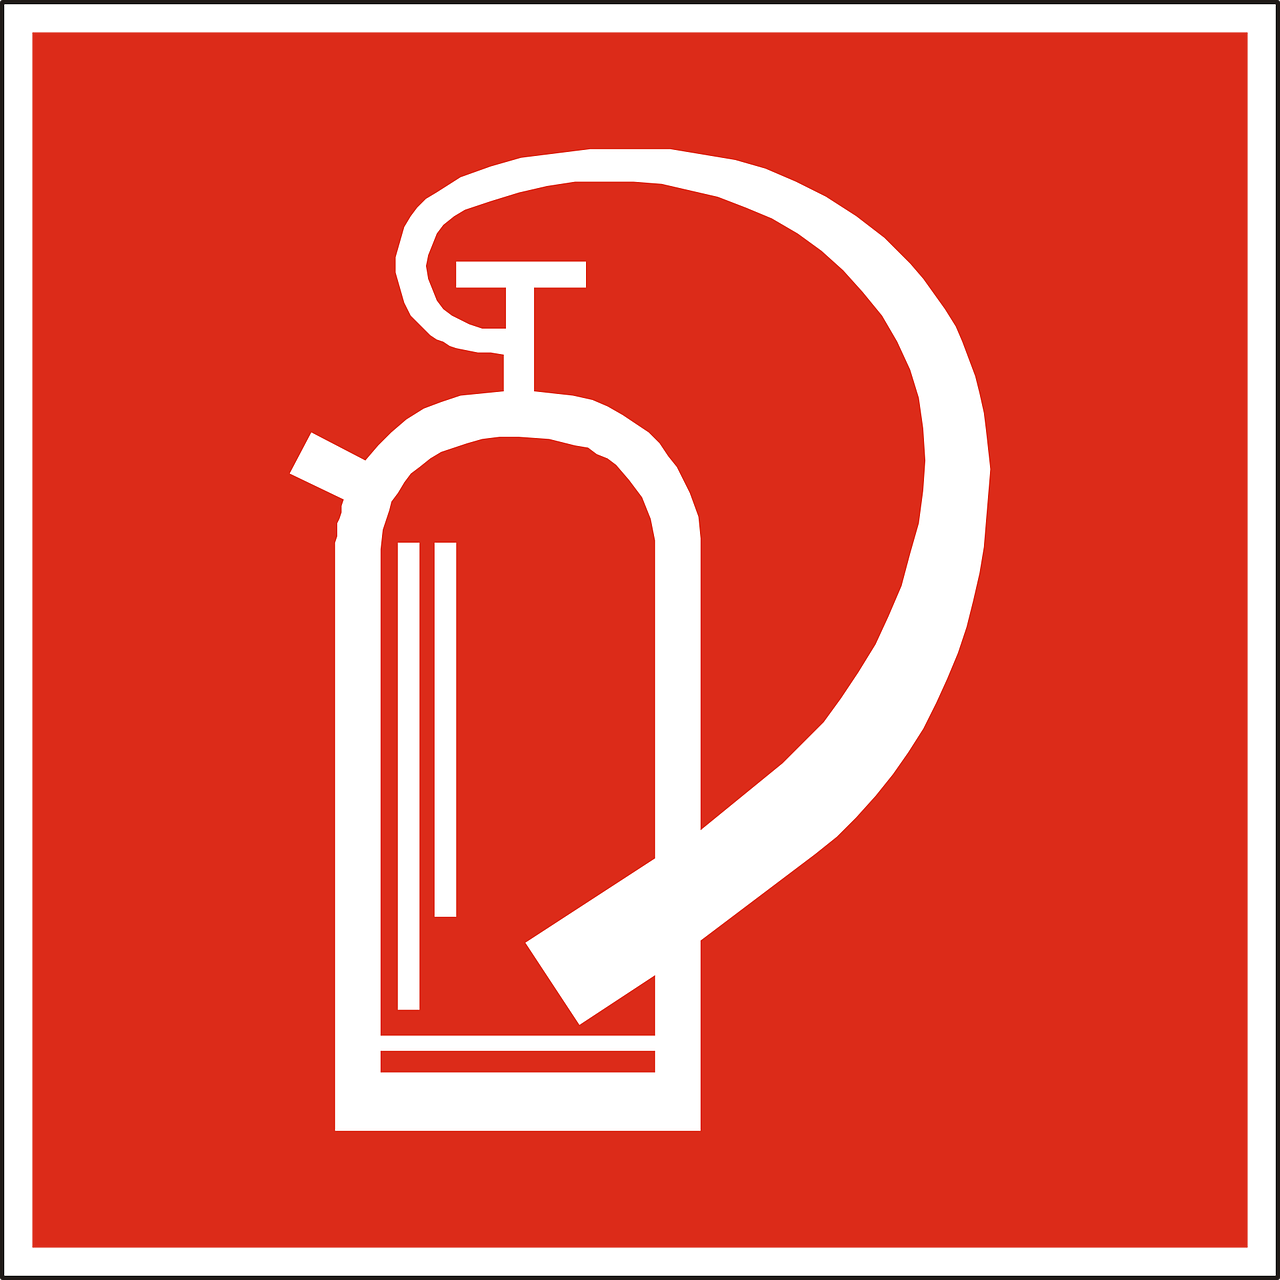 fire-extinguisher-98593_1280